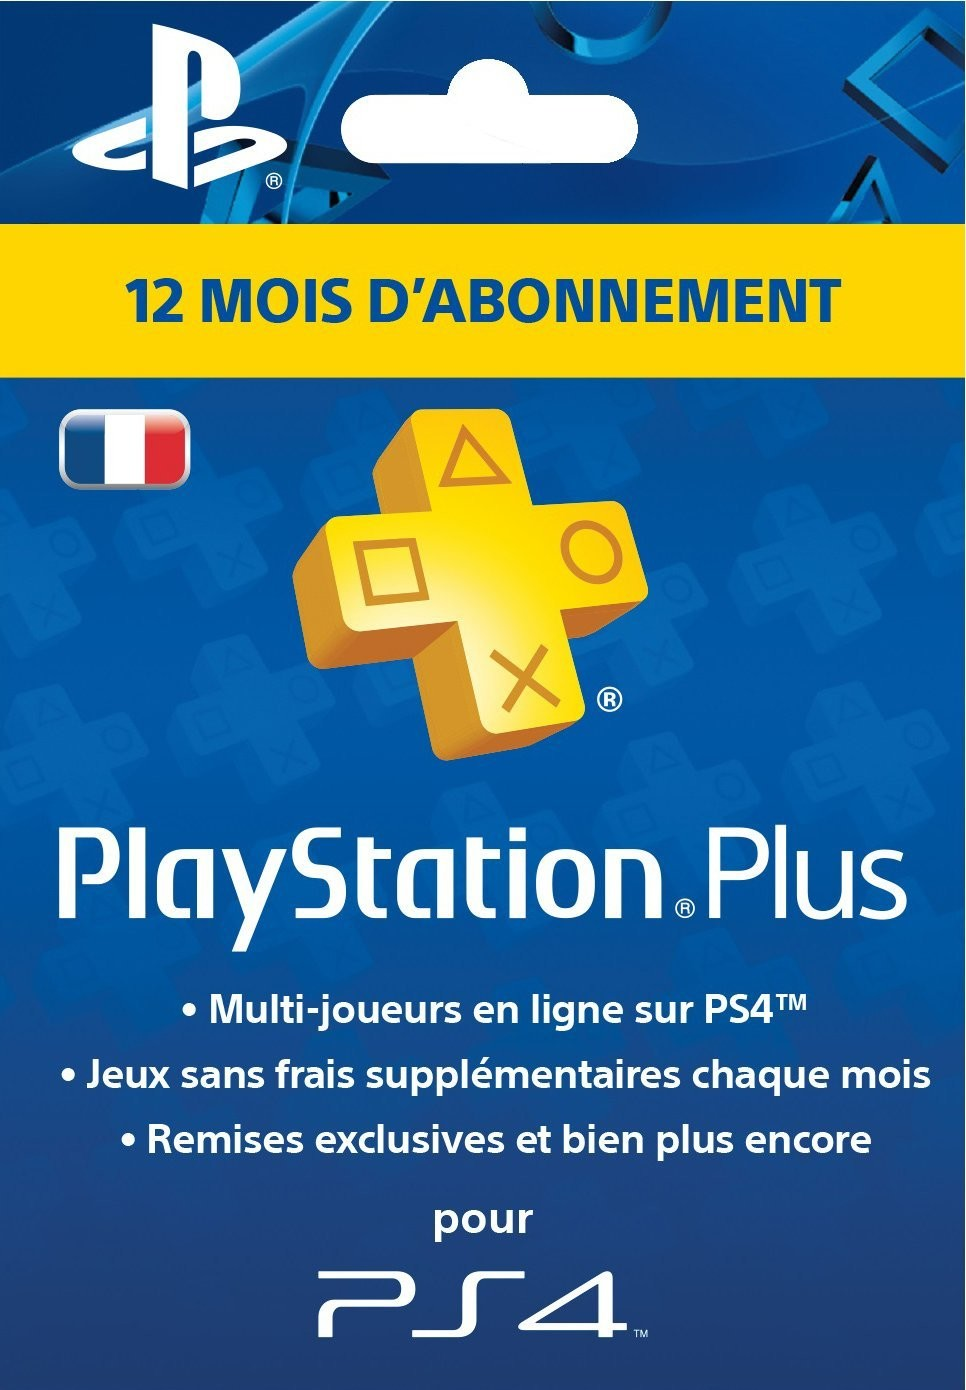 d s aujourd 39 hui promos jeux ps4 en magasins carrefour ex abonnement ps 1 an 40 sherlock. Black Bedroom Furniture Sets. Home Design Ideas